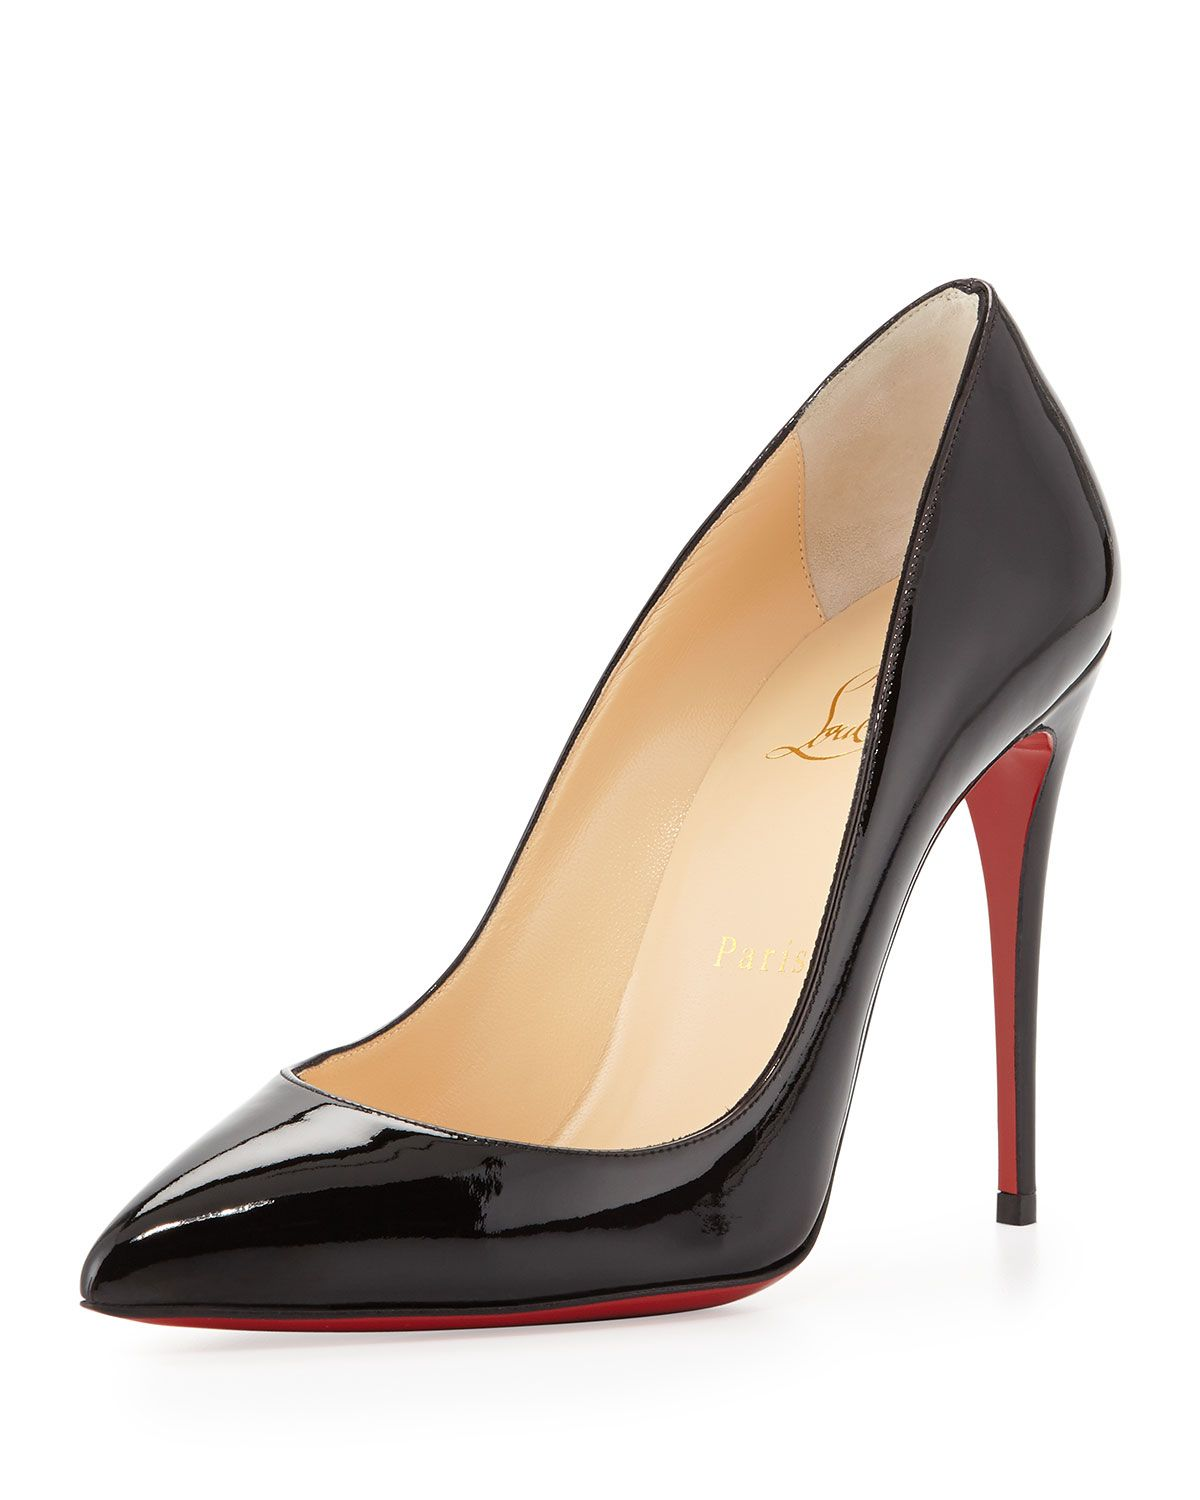 sports shoes 5427b 11621 Pigalle Follies Point-Toe Red Sole Pump Black | Christain ...